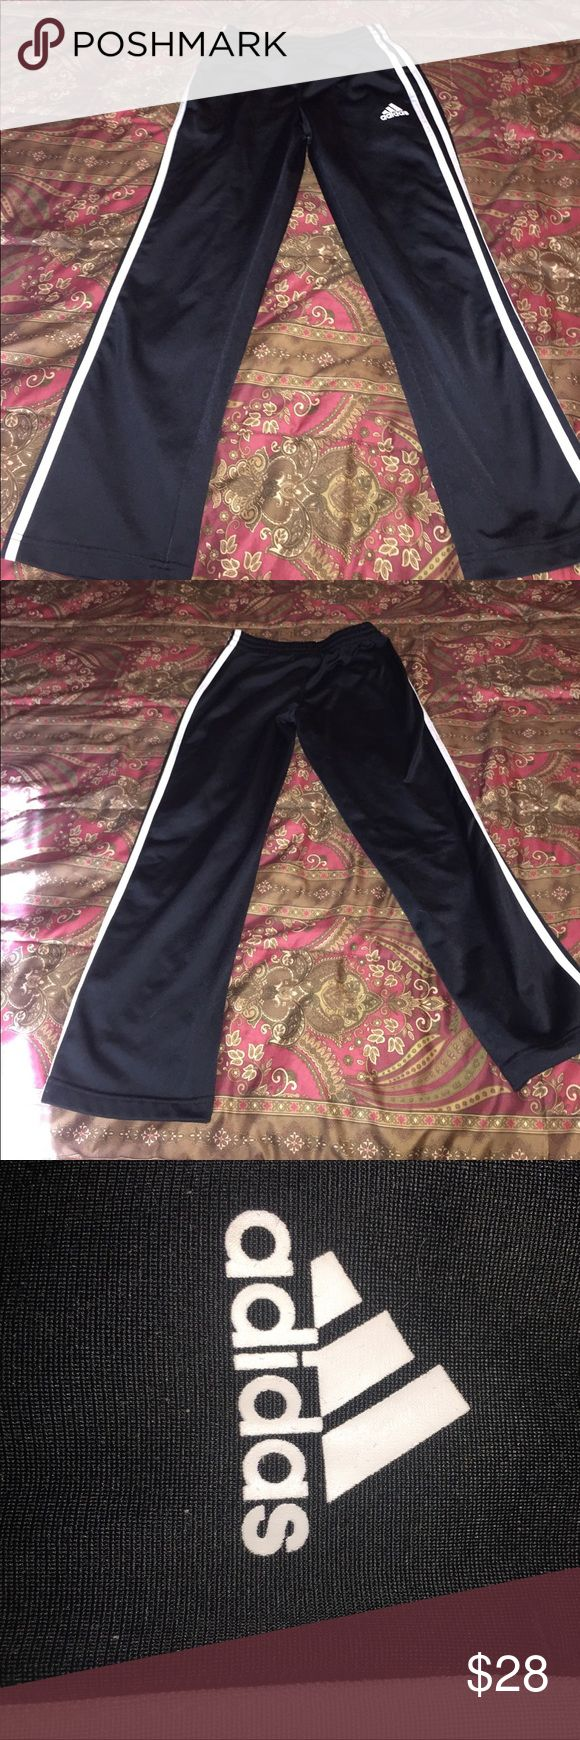 Adidas Originals Track Pants (NOT joggers) These are YOUTH small 7/8. Perfect for your little guy (or gal)! BUT fits a petite woman as well. I am 5'2 / 24/25 waist / 105 lbs and this fits just right. I like to style with a bodysuit, tight shirt tucked in, baggy shirt, or crop top. All depending on how you want to rock it!   Baggy fit with elastic waist. Low-rise. 70% cotton/30% polyester. Great condition. No flaws.NOT JOGGER STYLE PLEASE NOTE. adidas Bottoms Sweatpants & Joggers